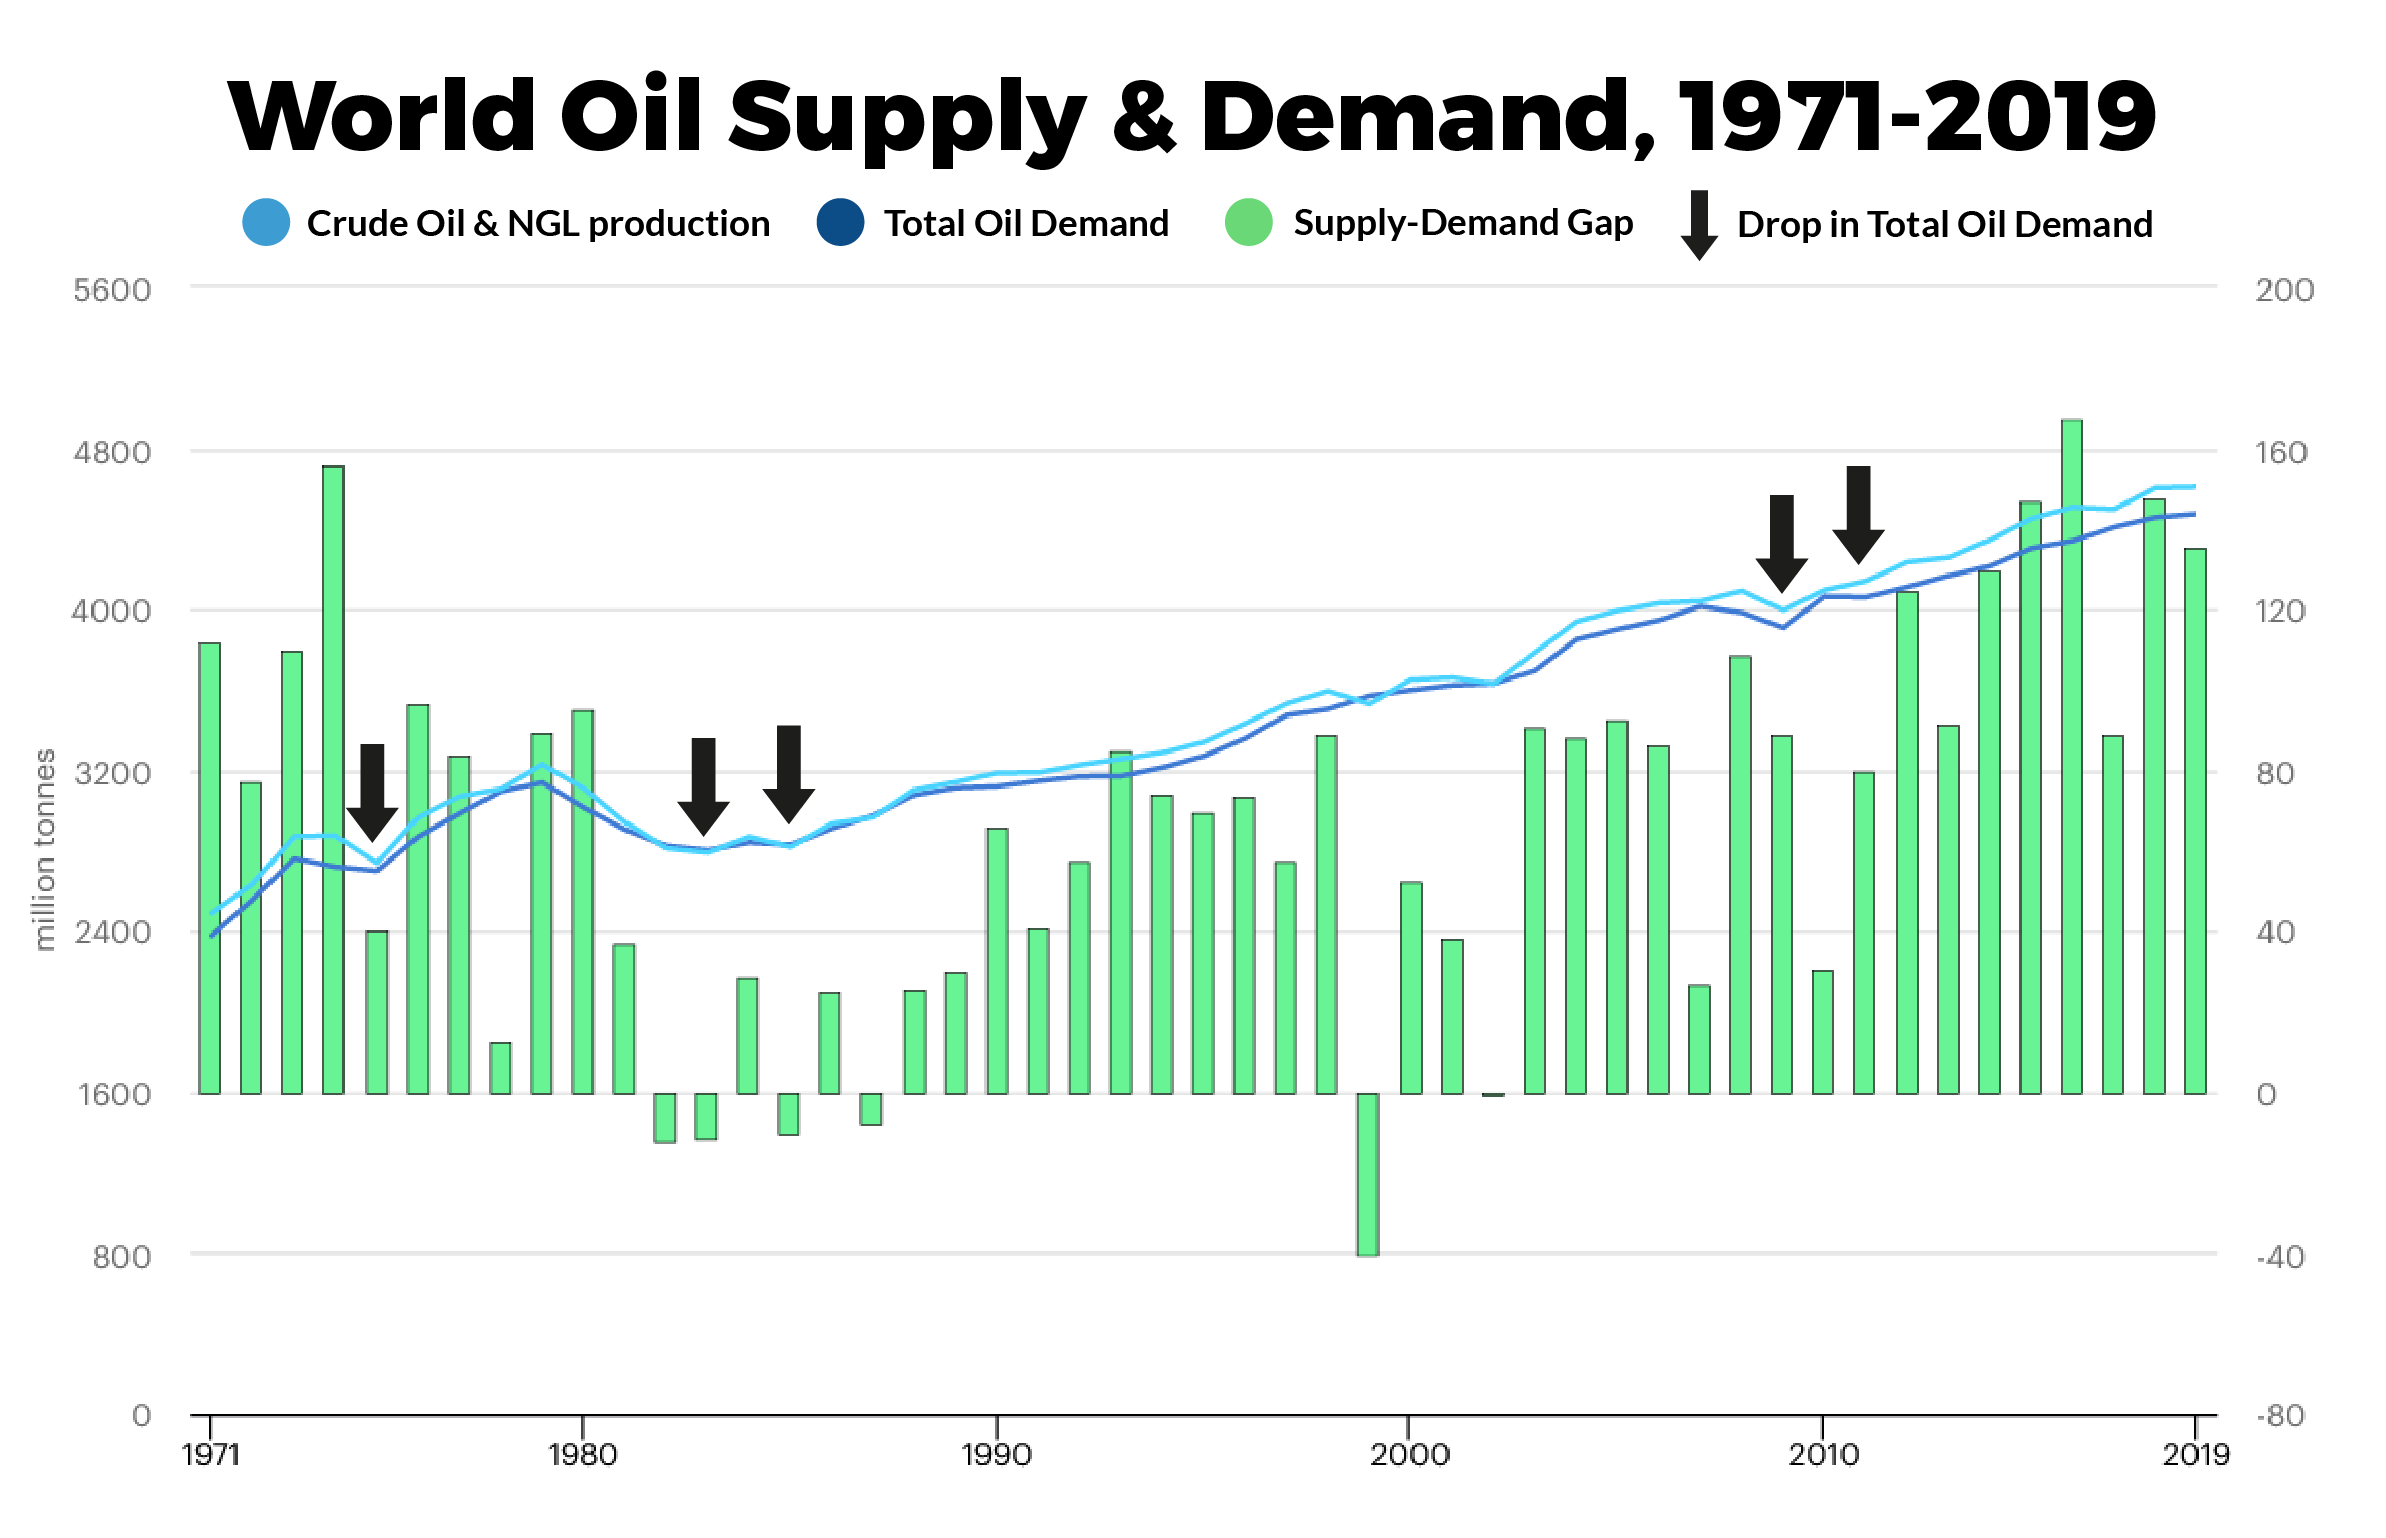 IEA World Outlook 2020 - Oil Demand Outlook 2019-2030 by Sector